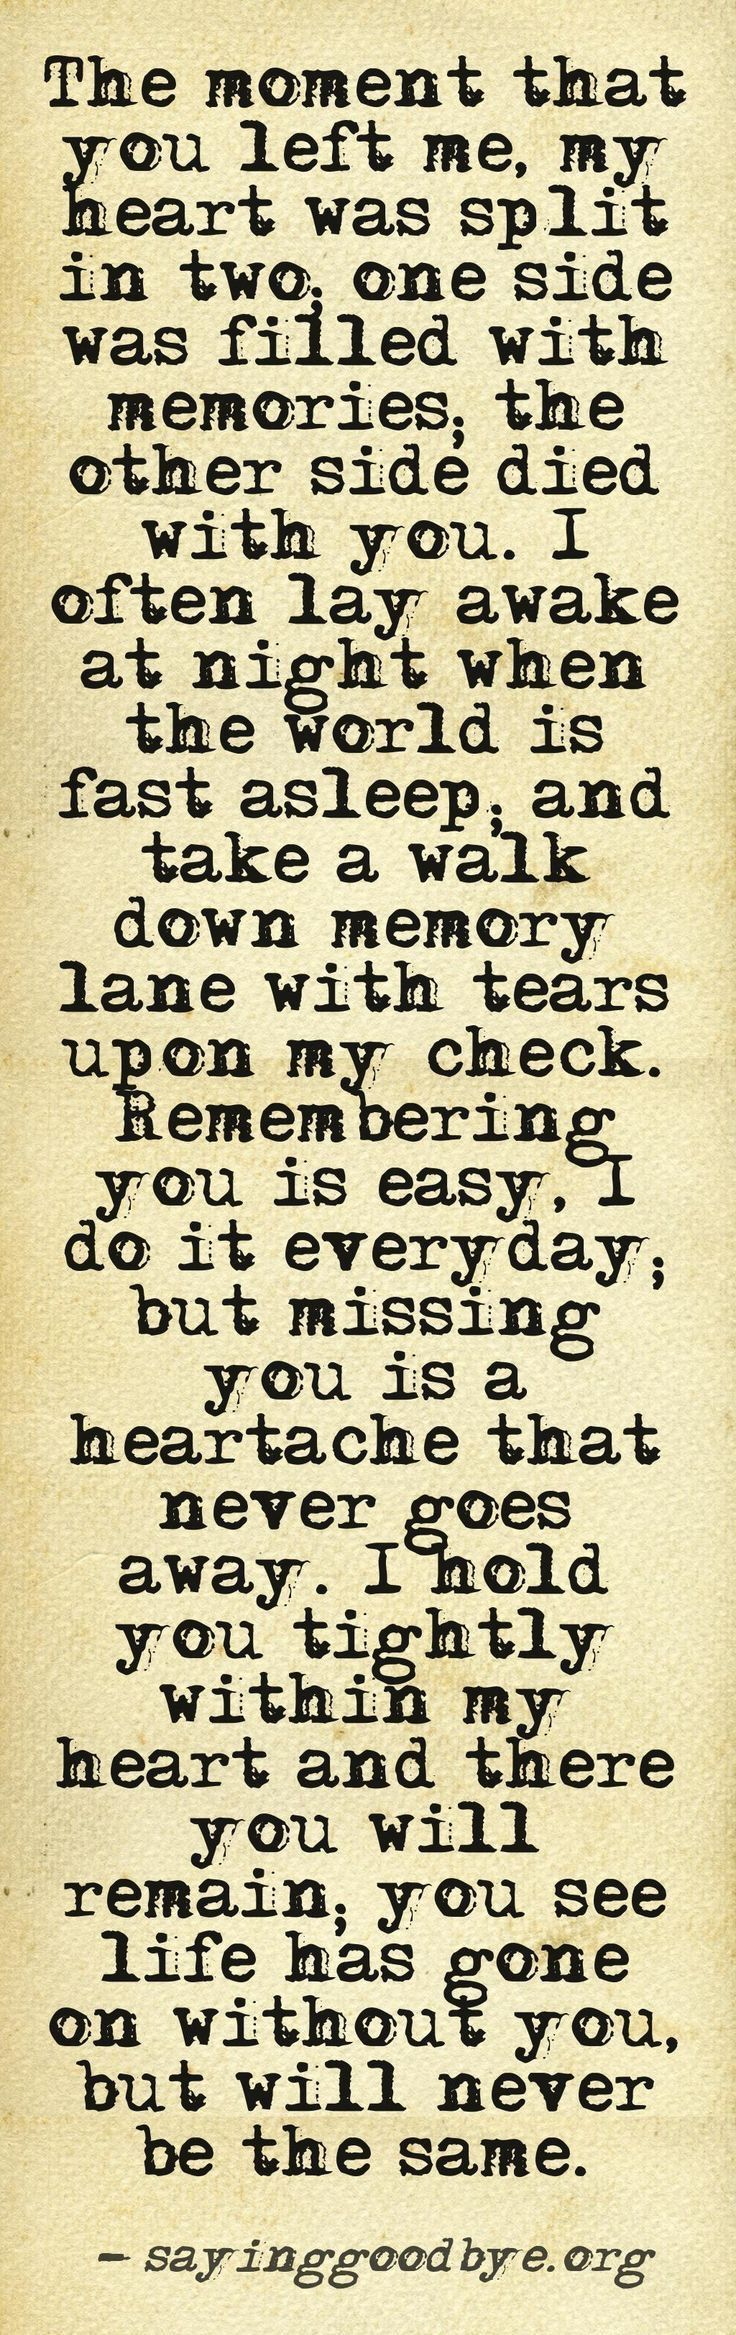 For all my dogs, esp. Abbey and Lola who left us not long ago. I miss you all and it's true... life goes on, but it's not the same without you.